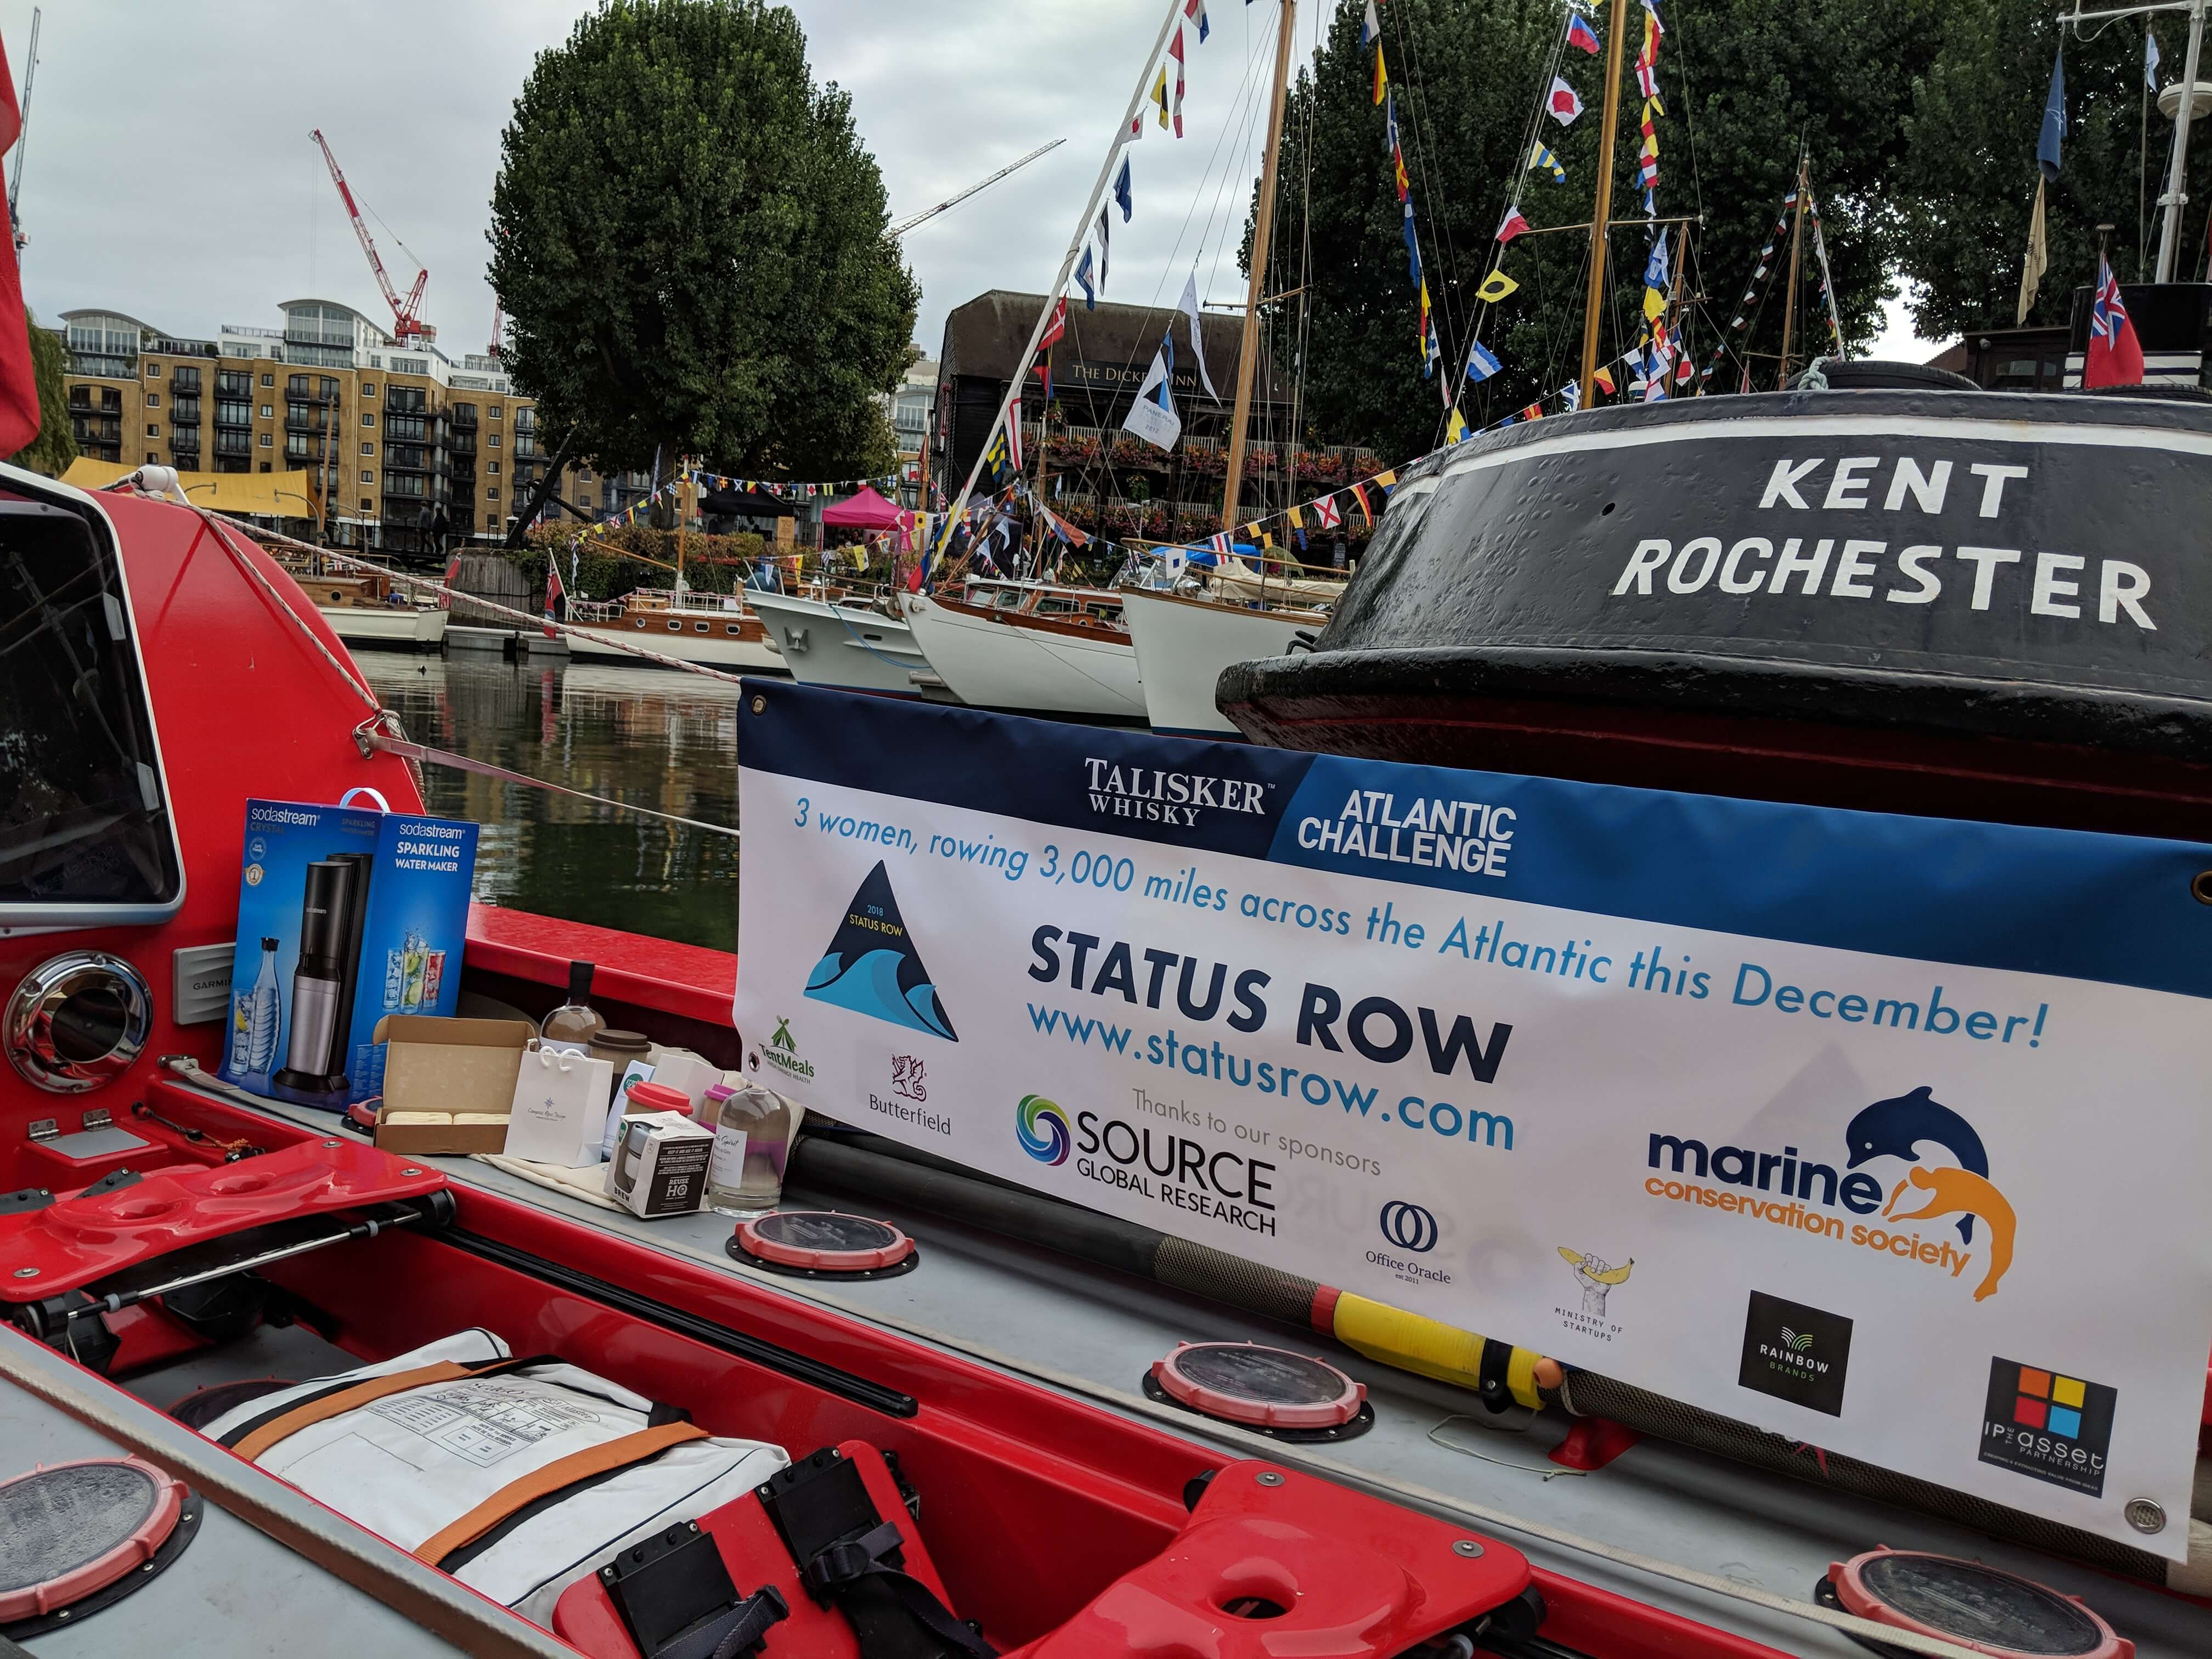 Status Row at the Classic Boat Festival